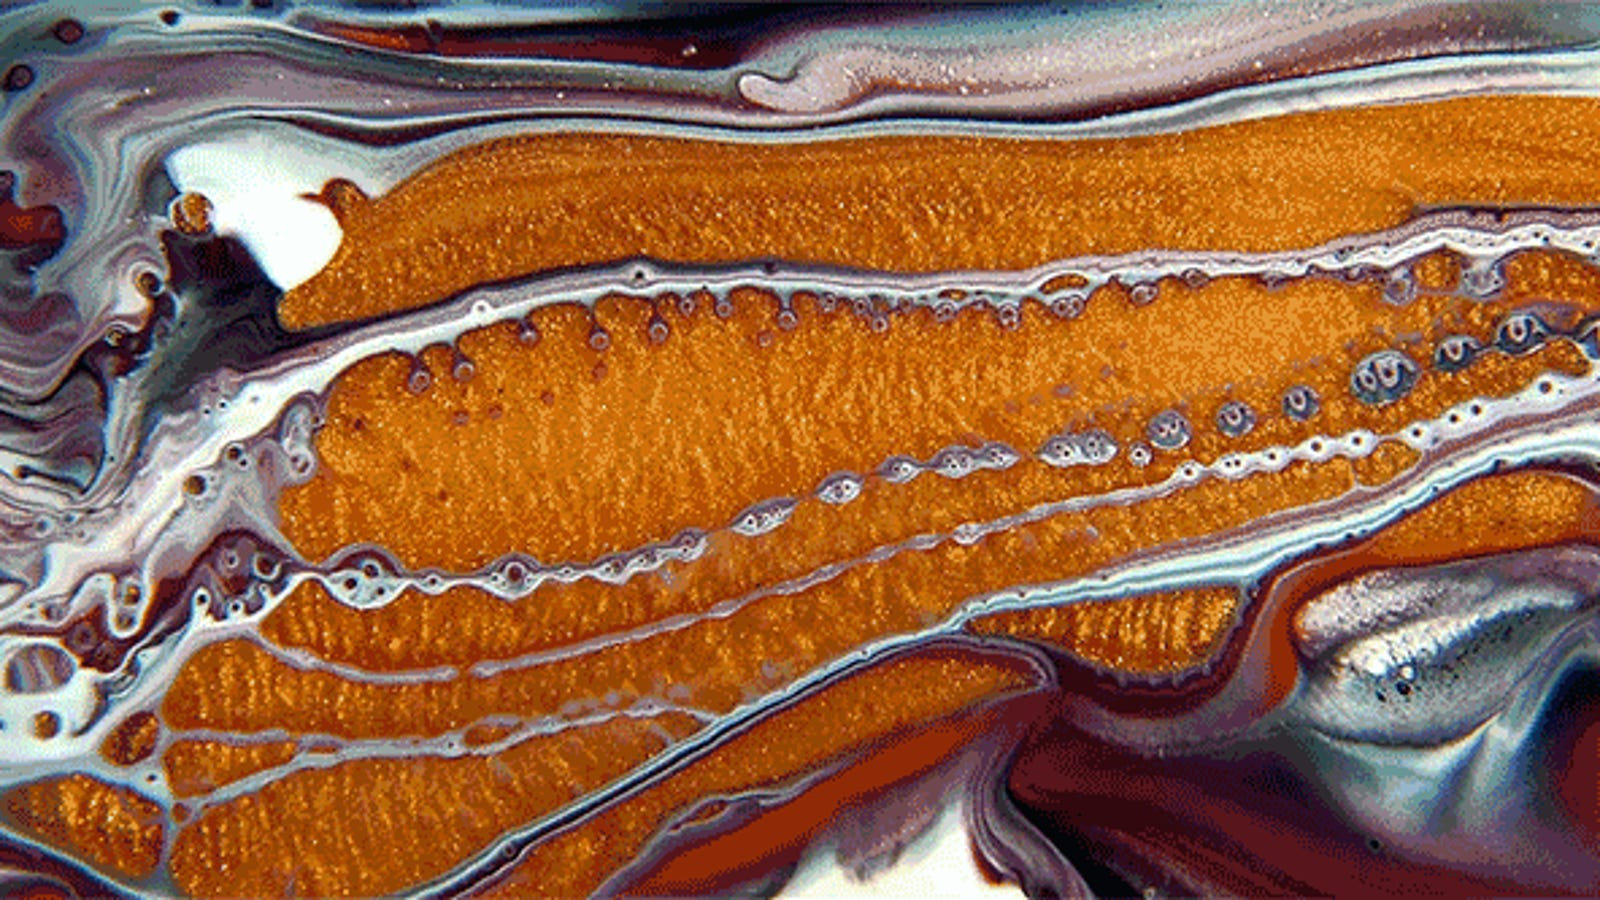 Mixing Oil, Paint, and Soap Looks Like Flying Over a Distant Alien World